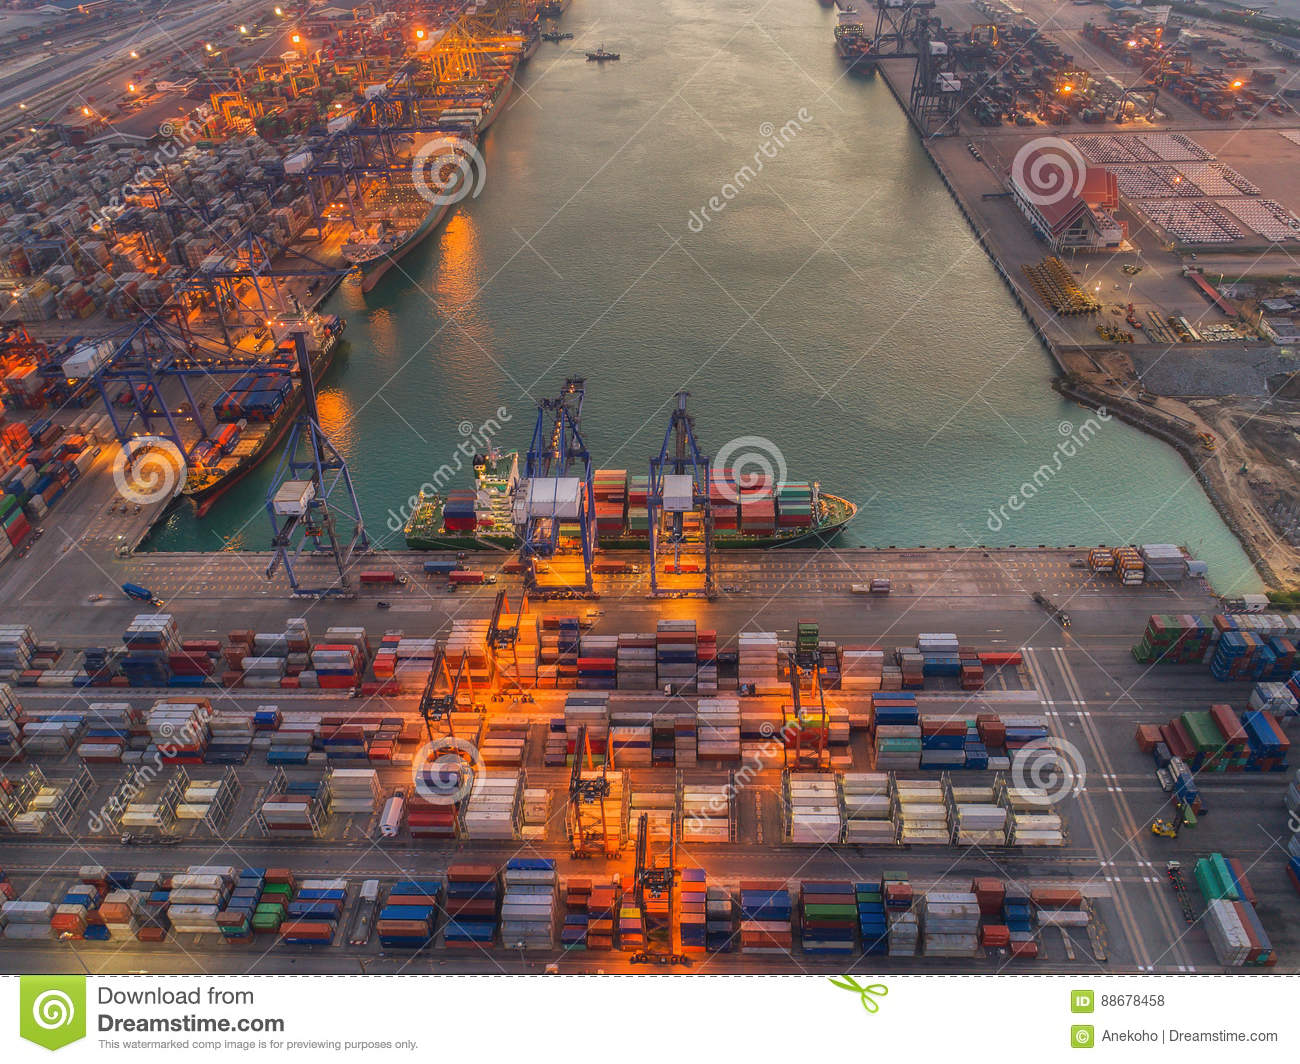 Logistic port stock photo  Image of industry, industrial